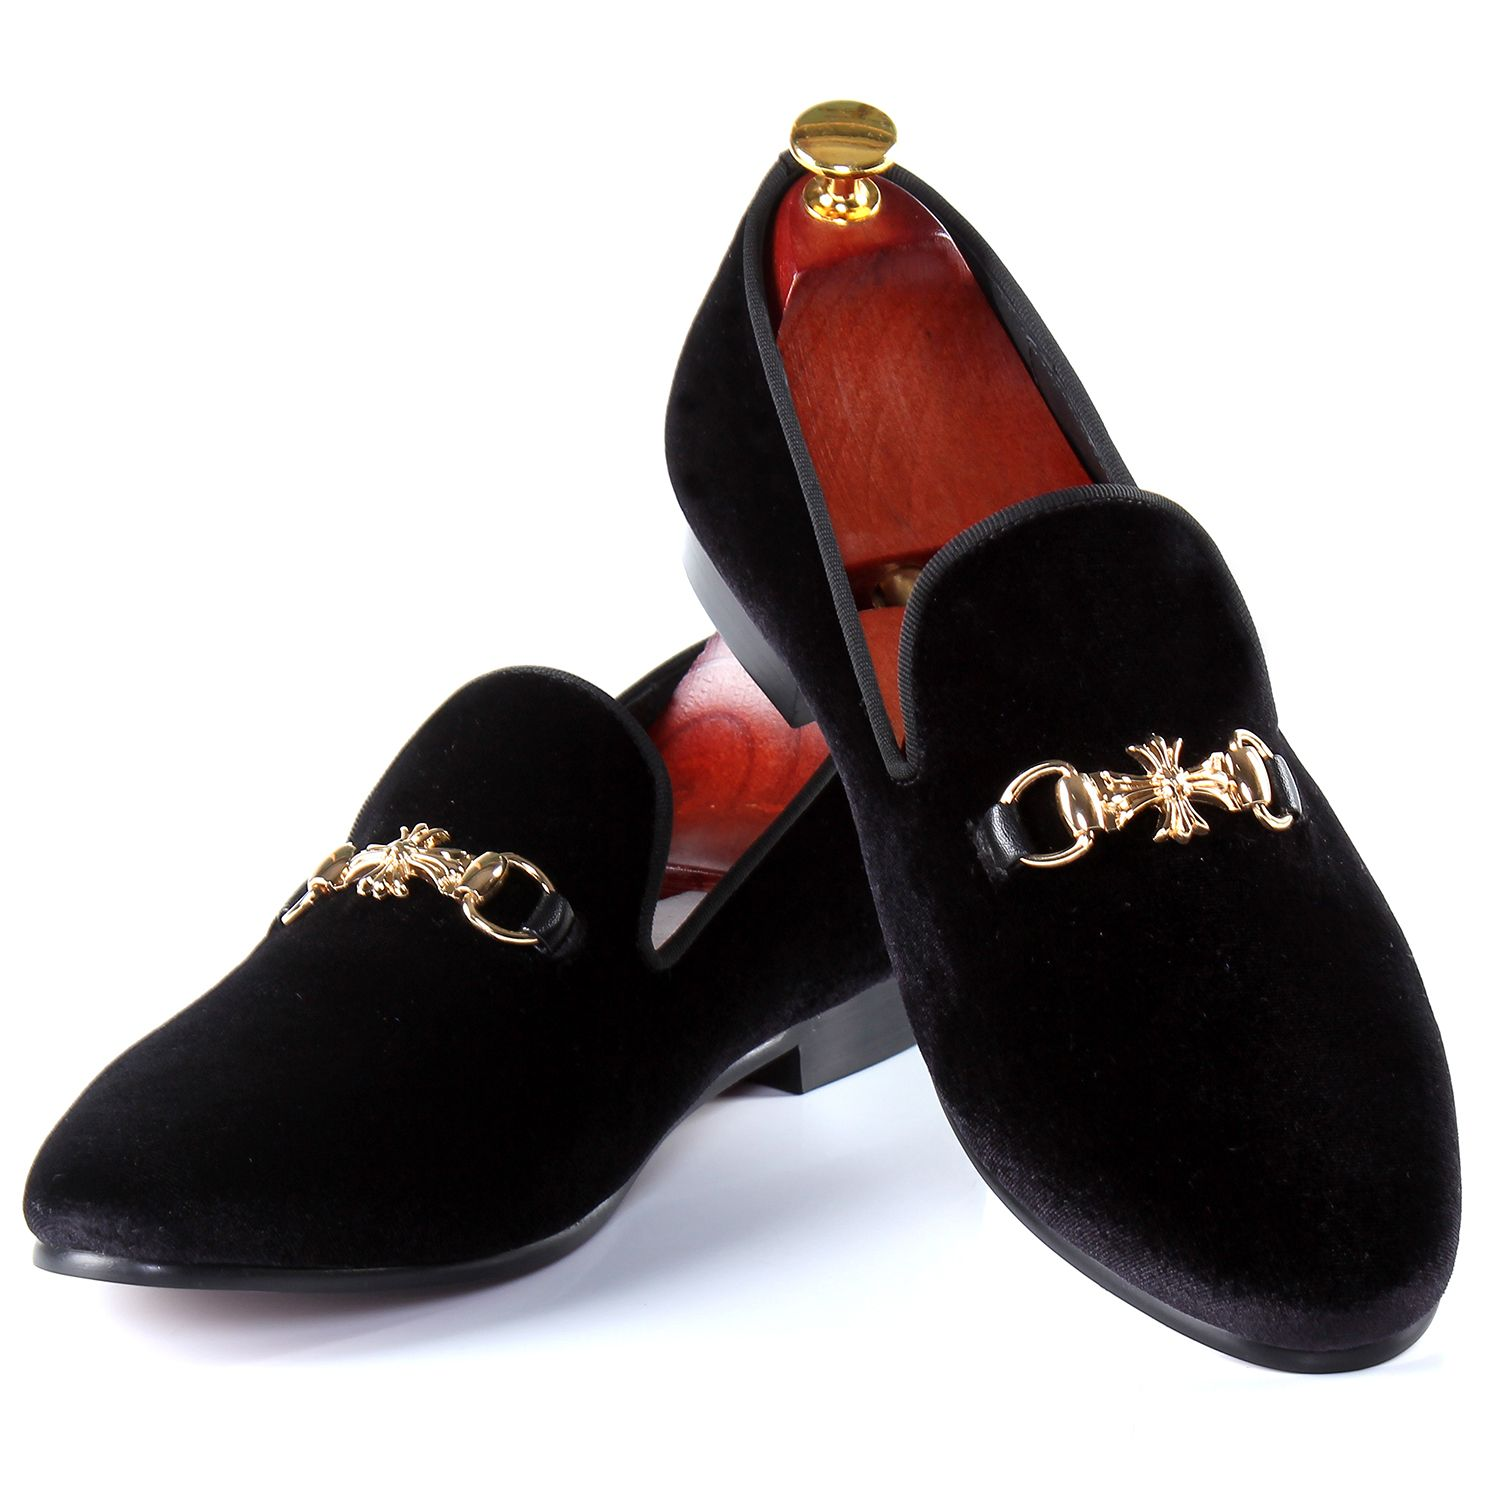 fc3c741a500 Harpelunde Men Flats Buckle Strap Dress Shoes Black Velvet Loafers Free  Shipping Size 7-14